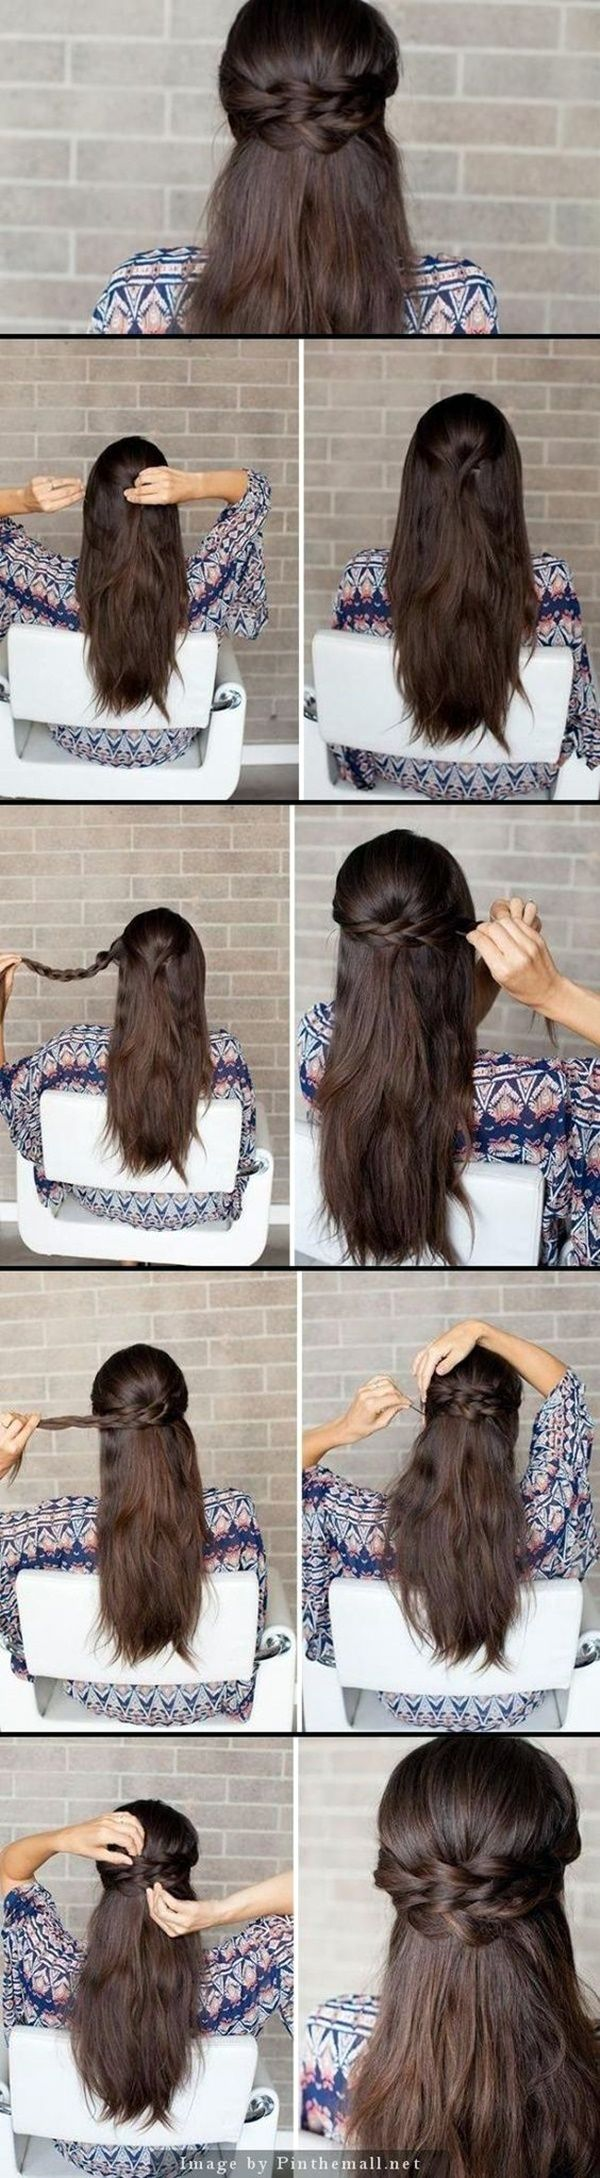 quick-hairstyle-tutorials-for-office-women-26